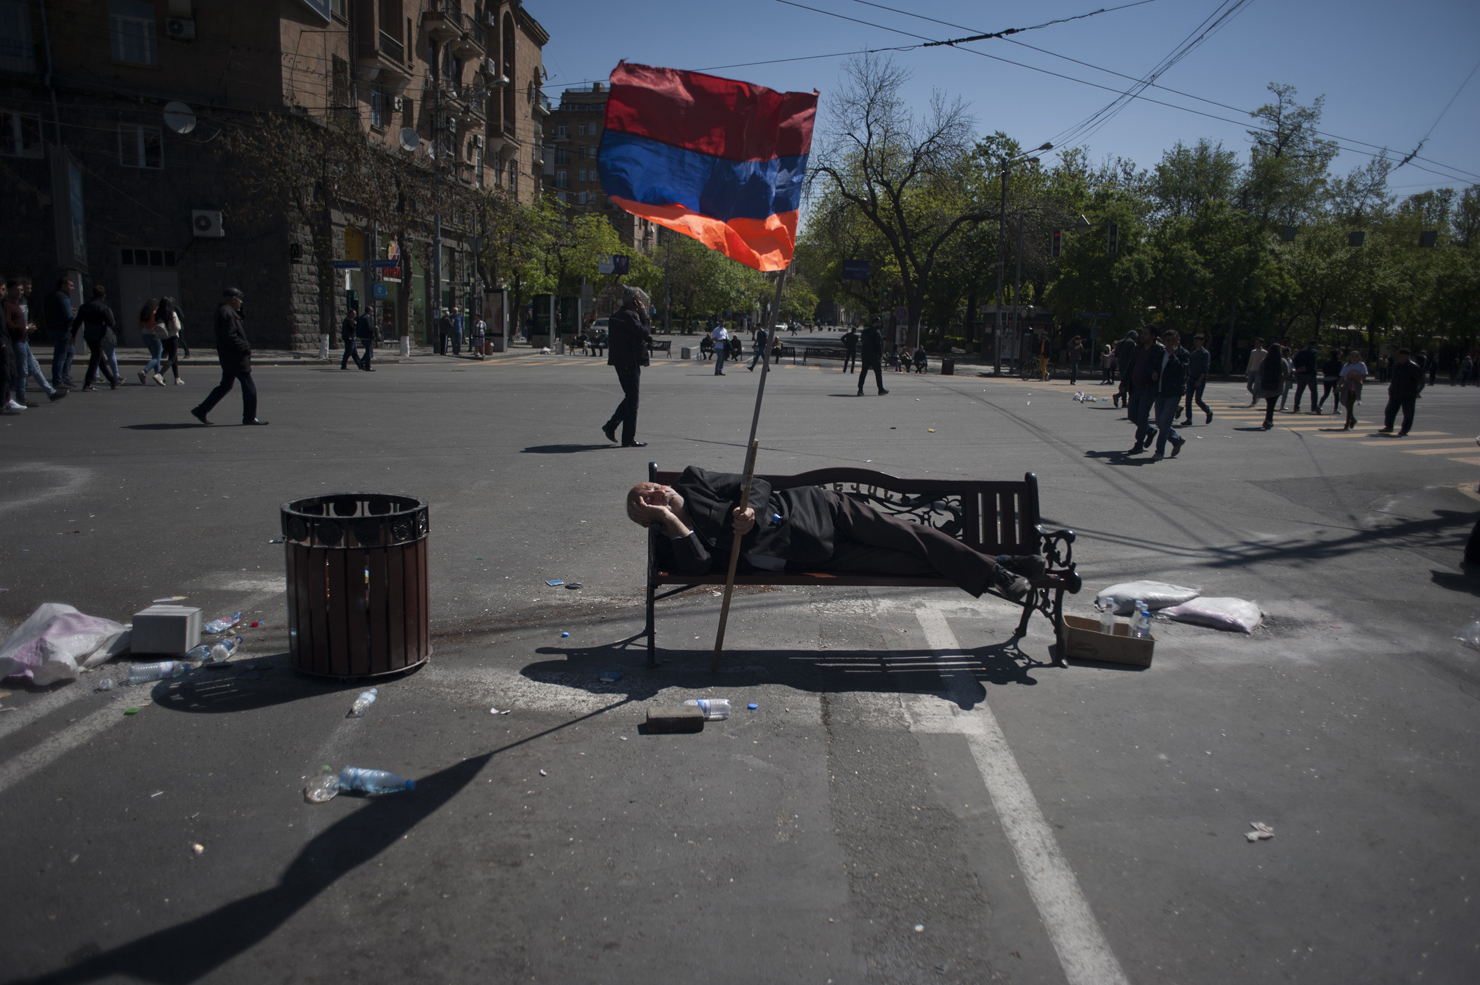 An man rests on a bench while holding the Armenian flag, April 17